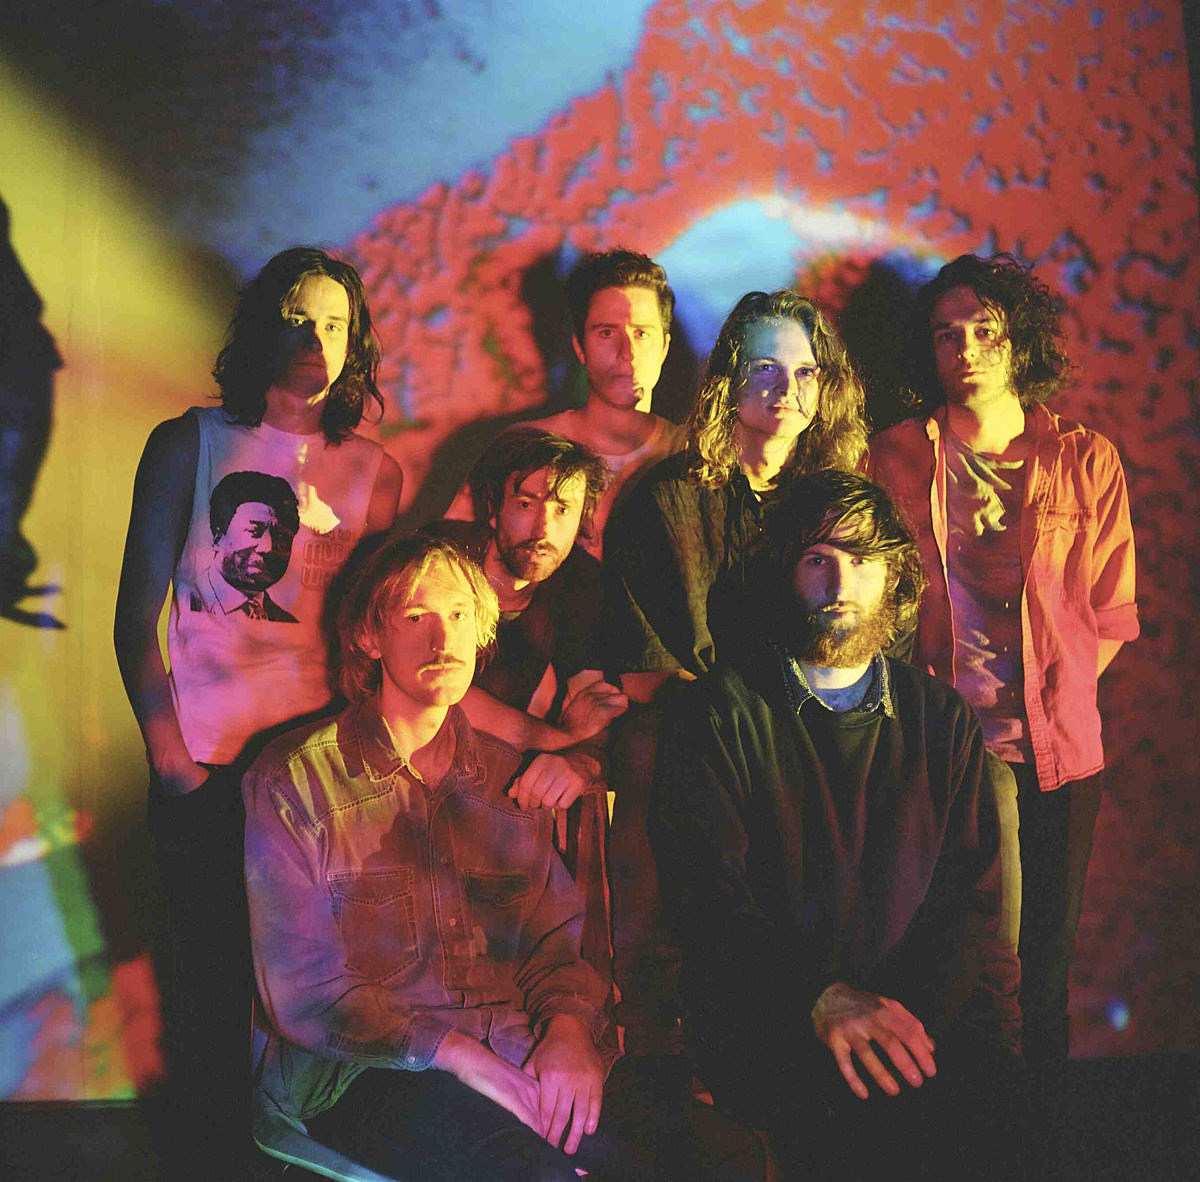 King Gizzard made a videogame for new thrash metal album, on tour now